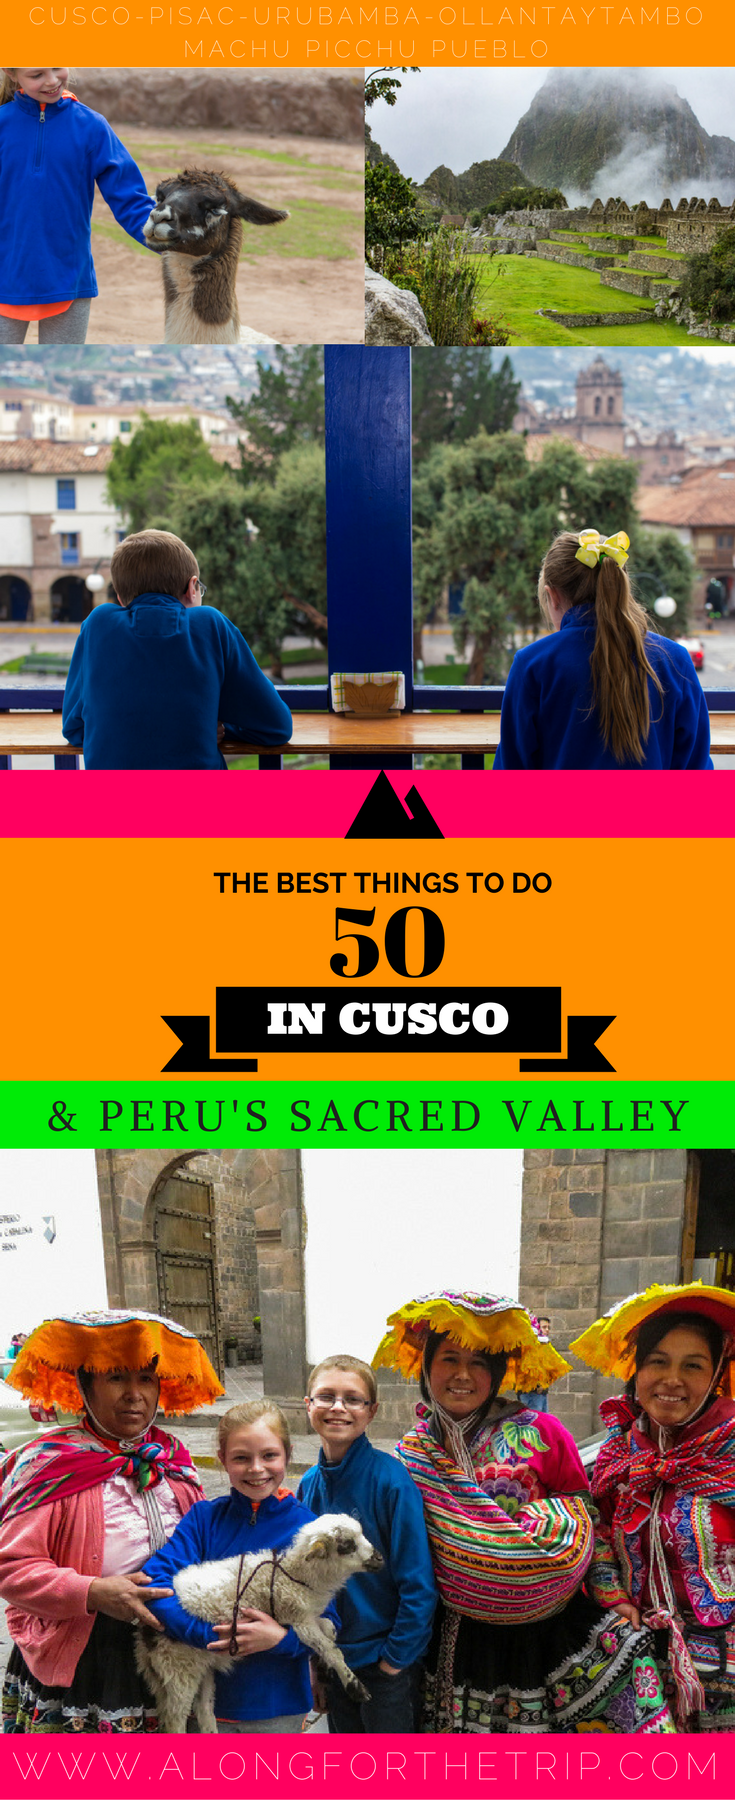 We love Peru for it's history, scenery, and charming people and you will too! From Machu Picchu, Quechuan textiles, alpacas, and pisco sours, enjoy the 50 best things to do in Cusco and Sacred Valley #Peru. | #familytravel #machupicchu #SouthAmerica